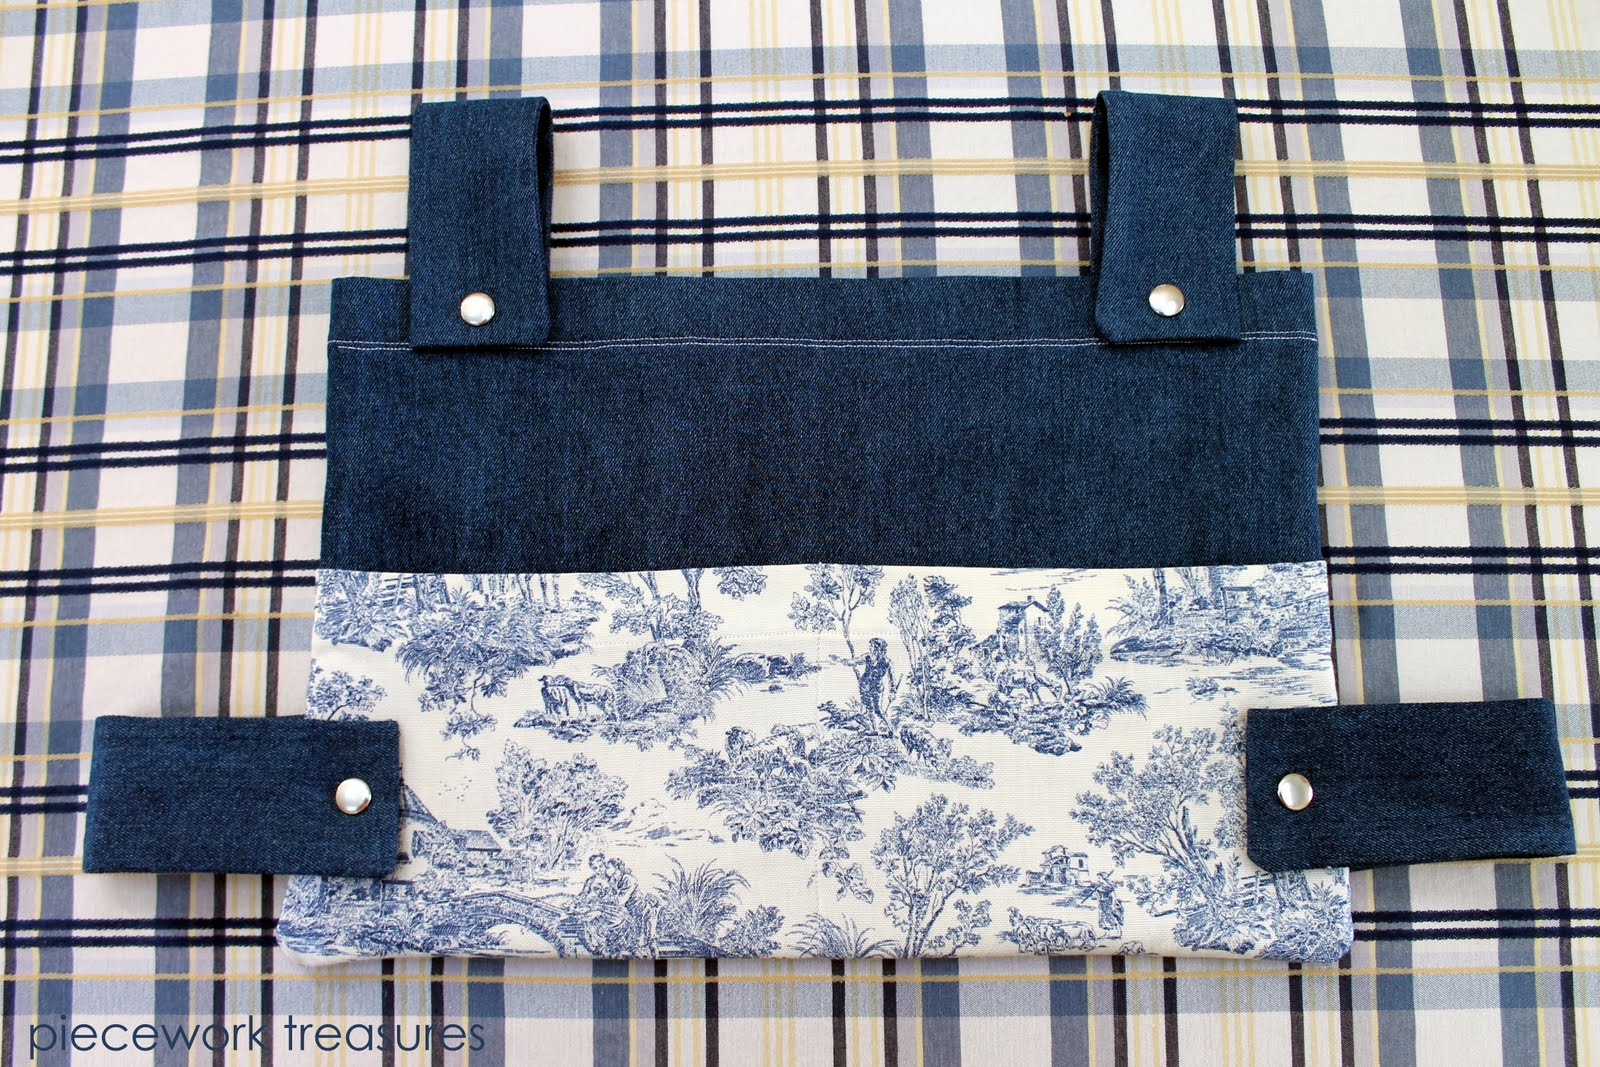 Laura S Hall Of Fame Included My First Walker Bag And There Are Also Photos Others This Is What I Came Up With Denim Toile A Great